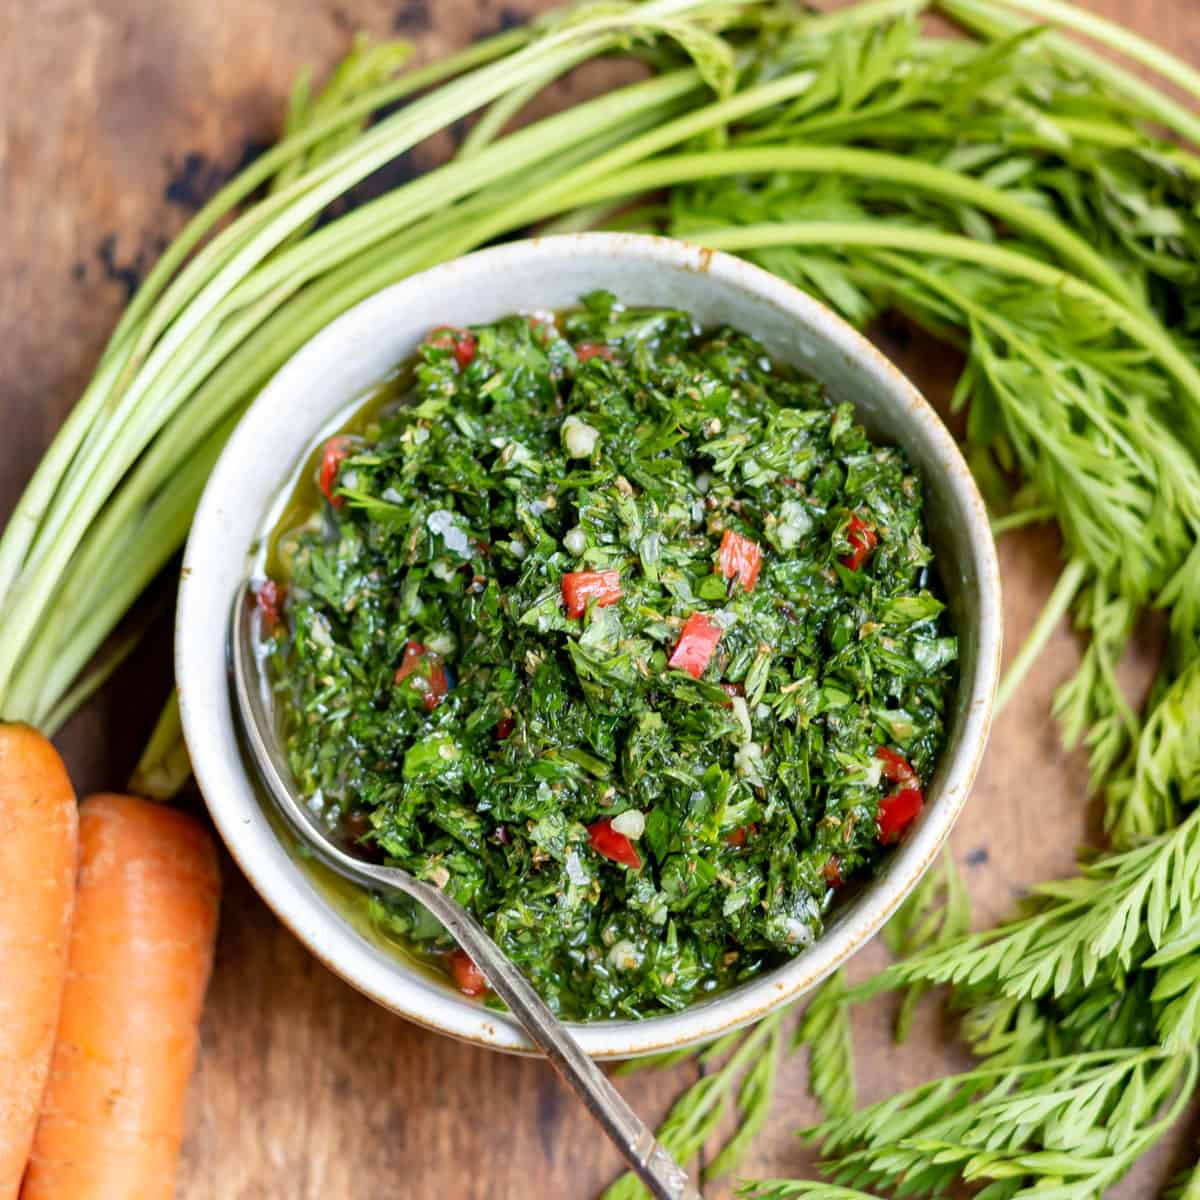 Bunched carrots around a bowl of chimichurri.